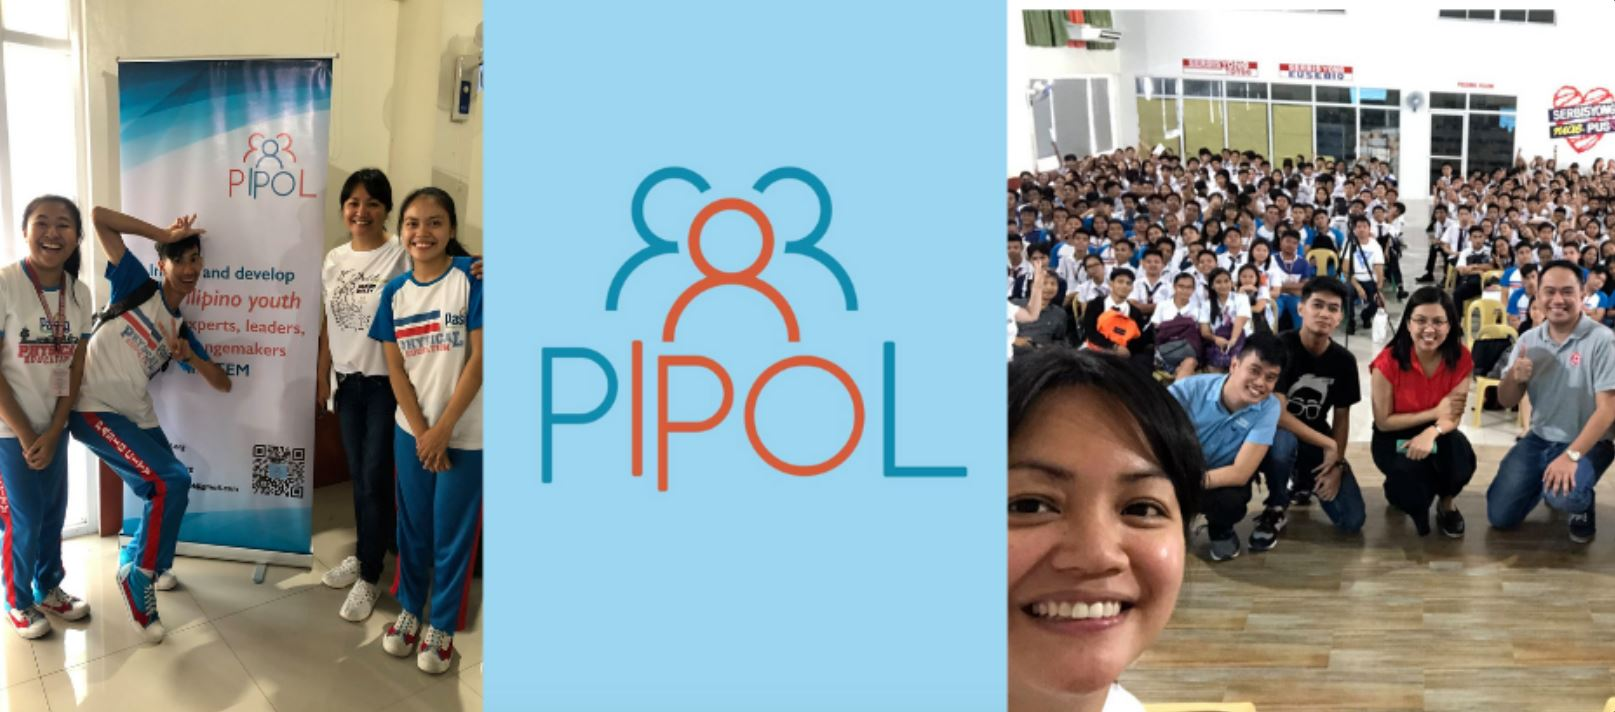 PIPOL raised funds public school